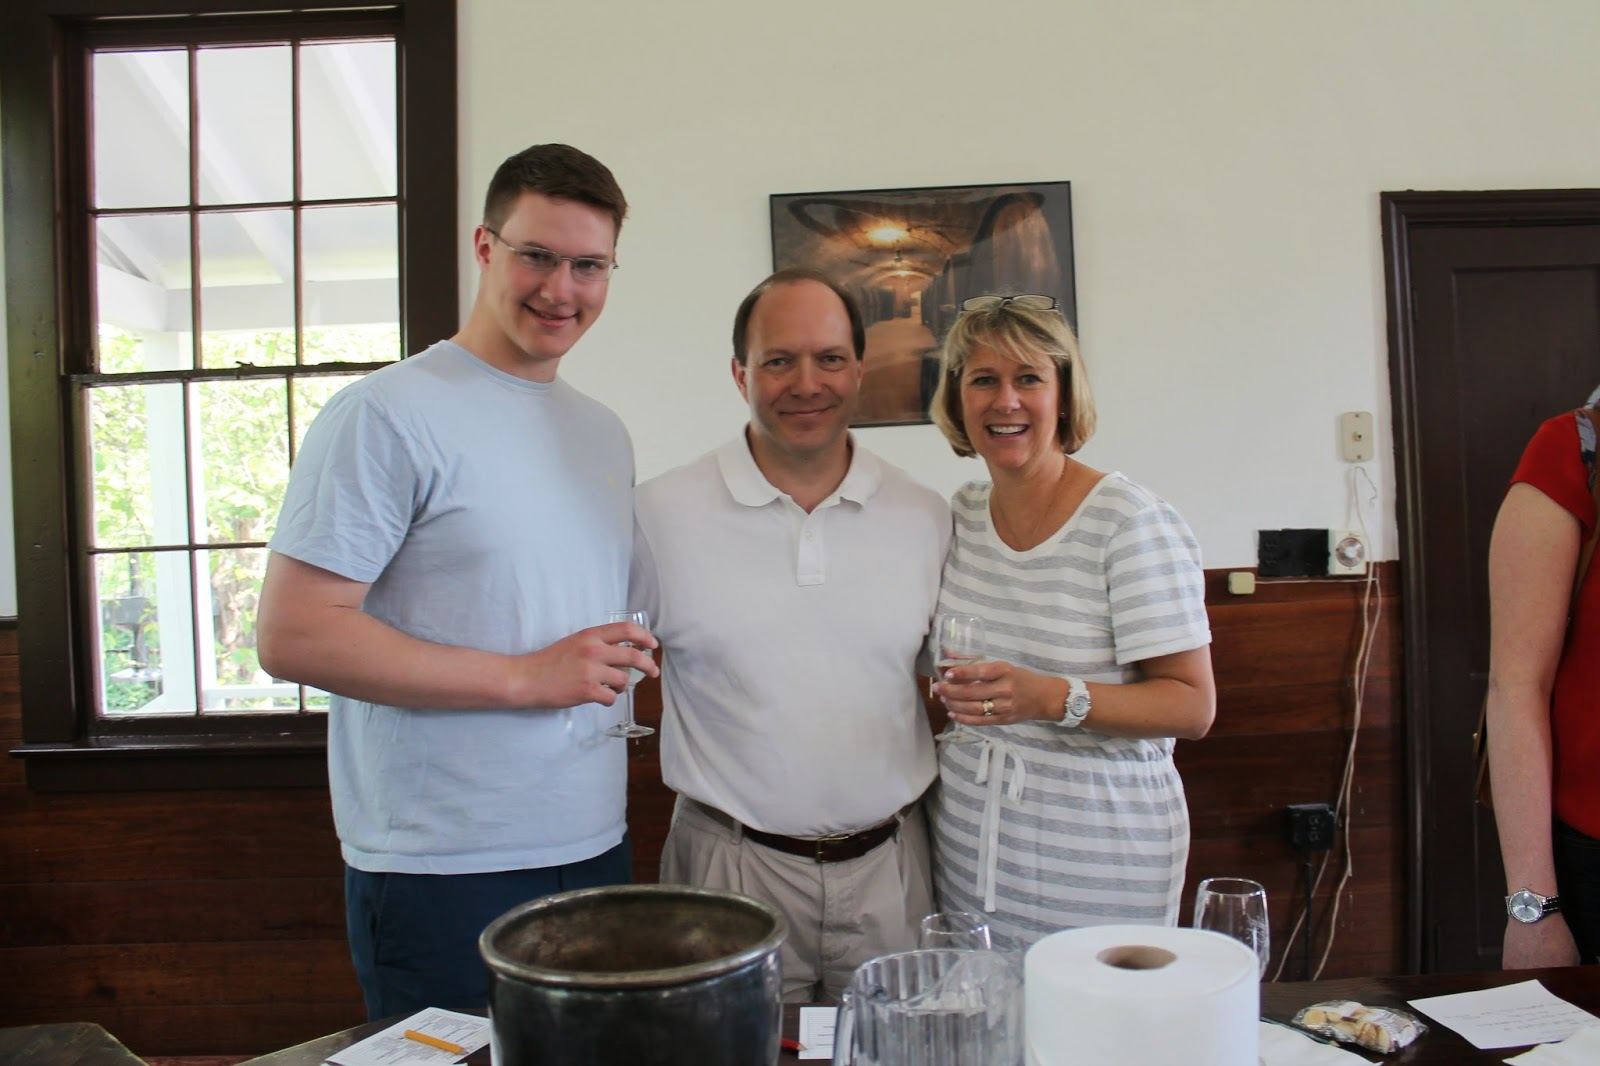 Brotherhood Winery tasting room - Winey Mom, Hubs and Son